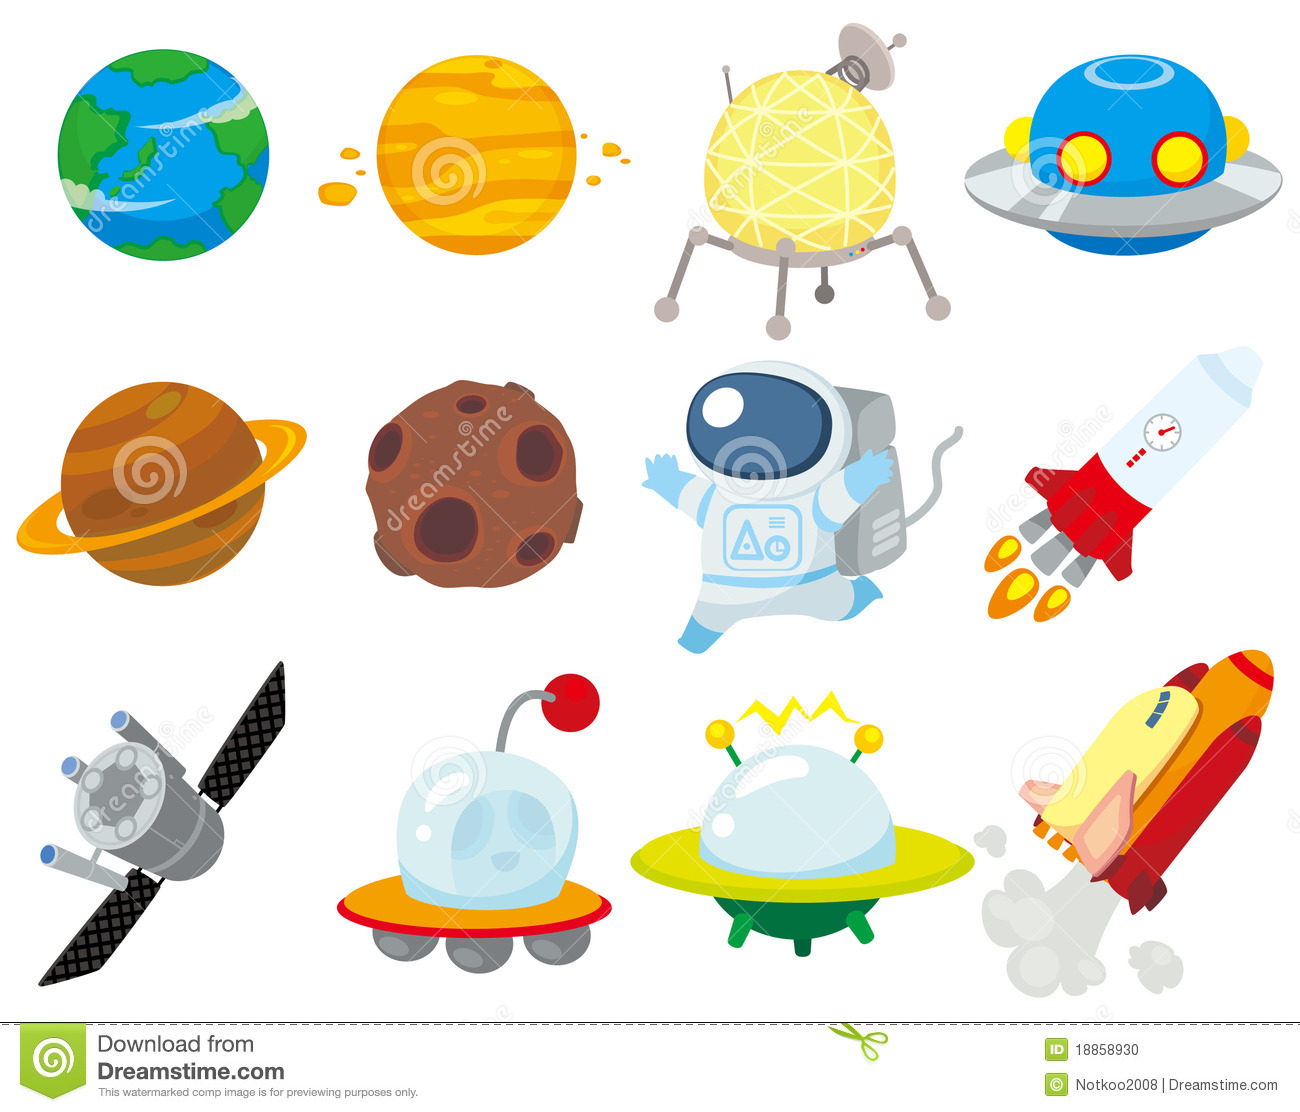 Cartoon Space Icon Stock Photo - Image: 18858930